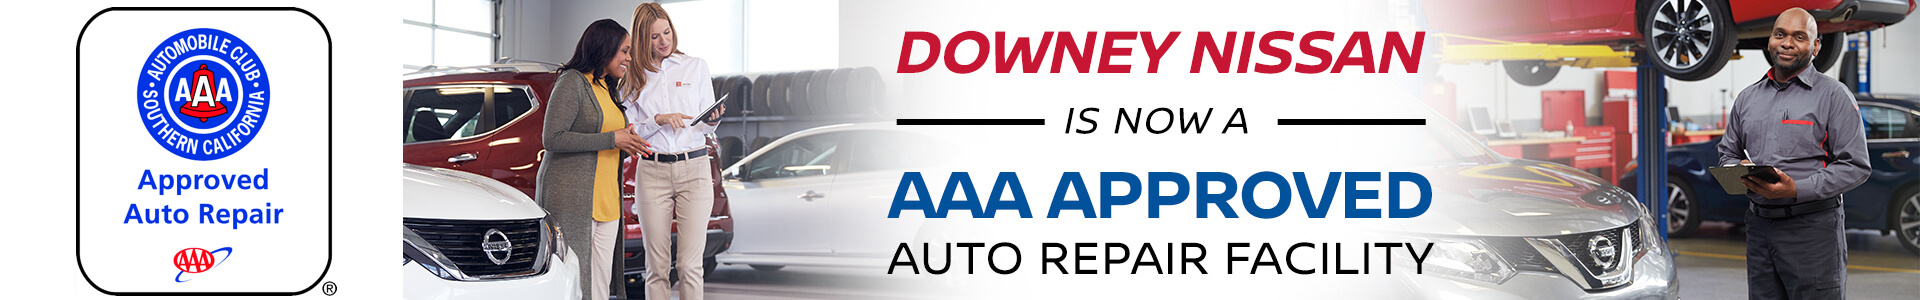 Downey Nissan is now a AAA Approved Auto Repair Facility